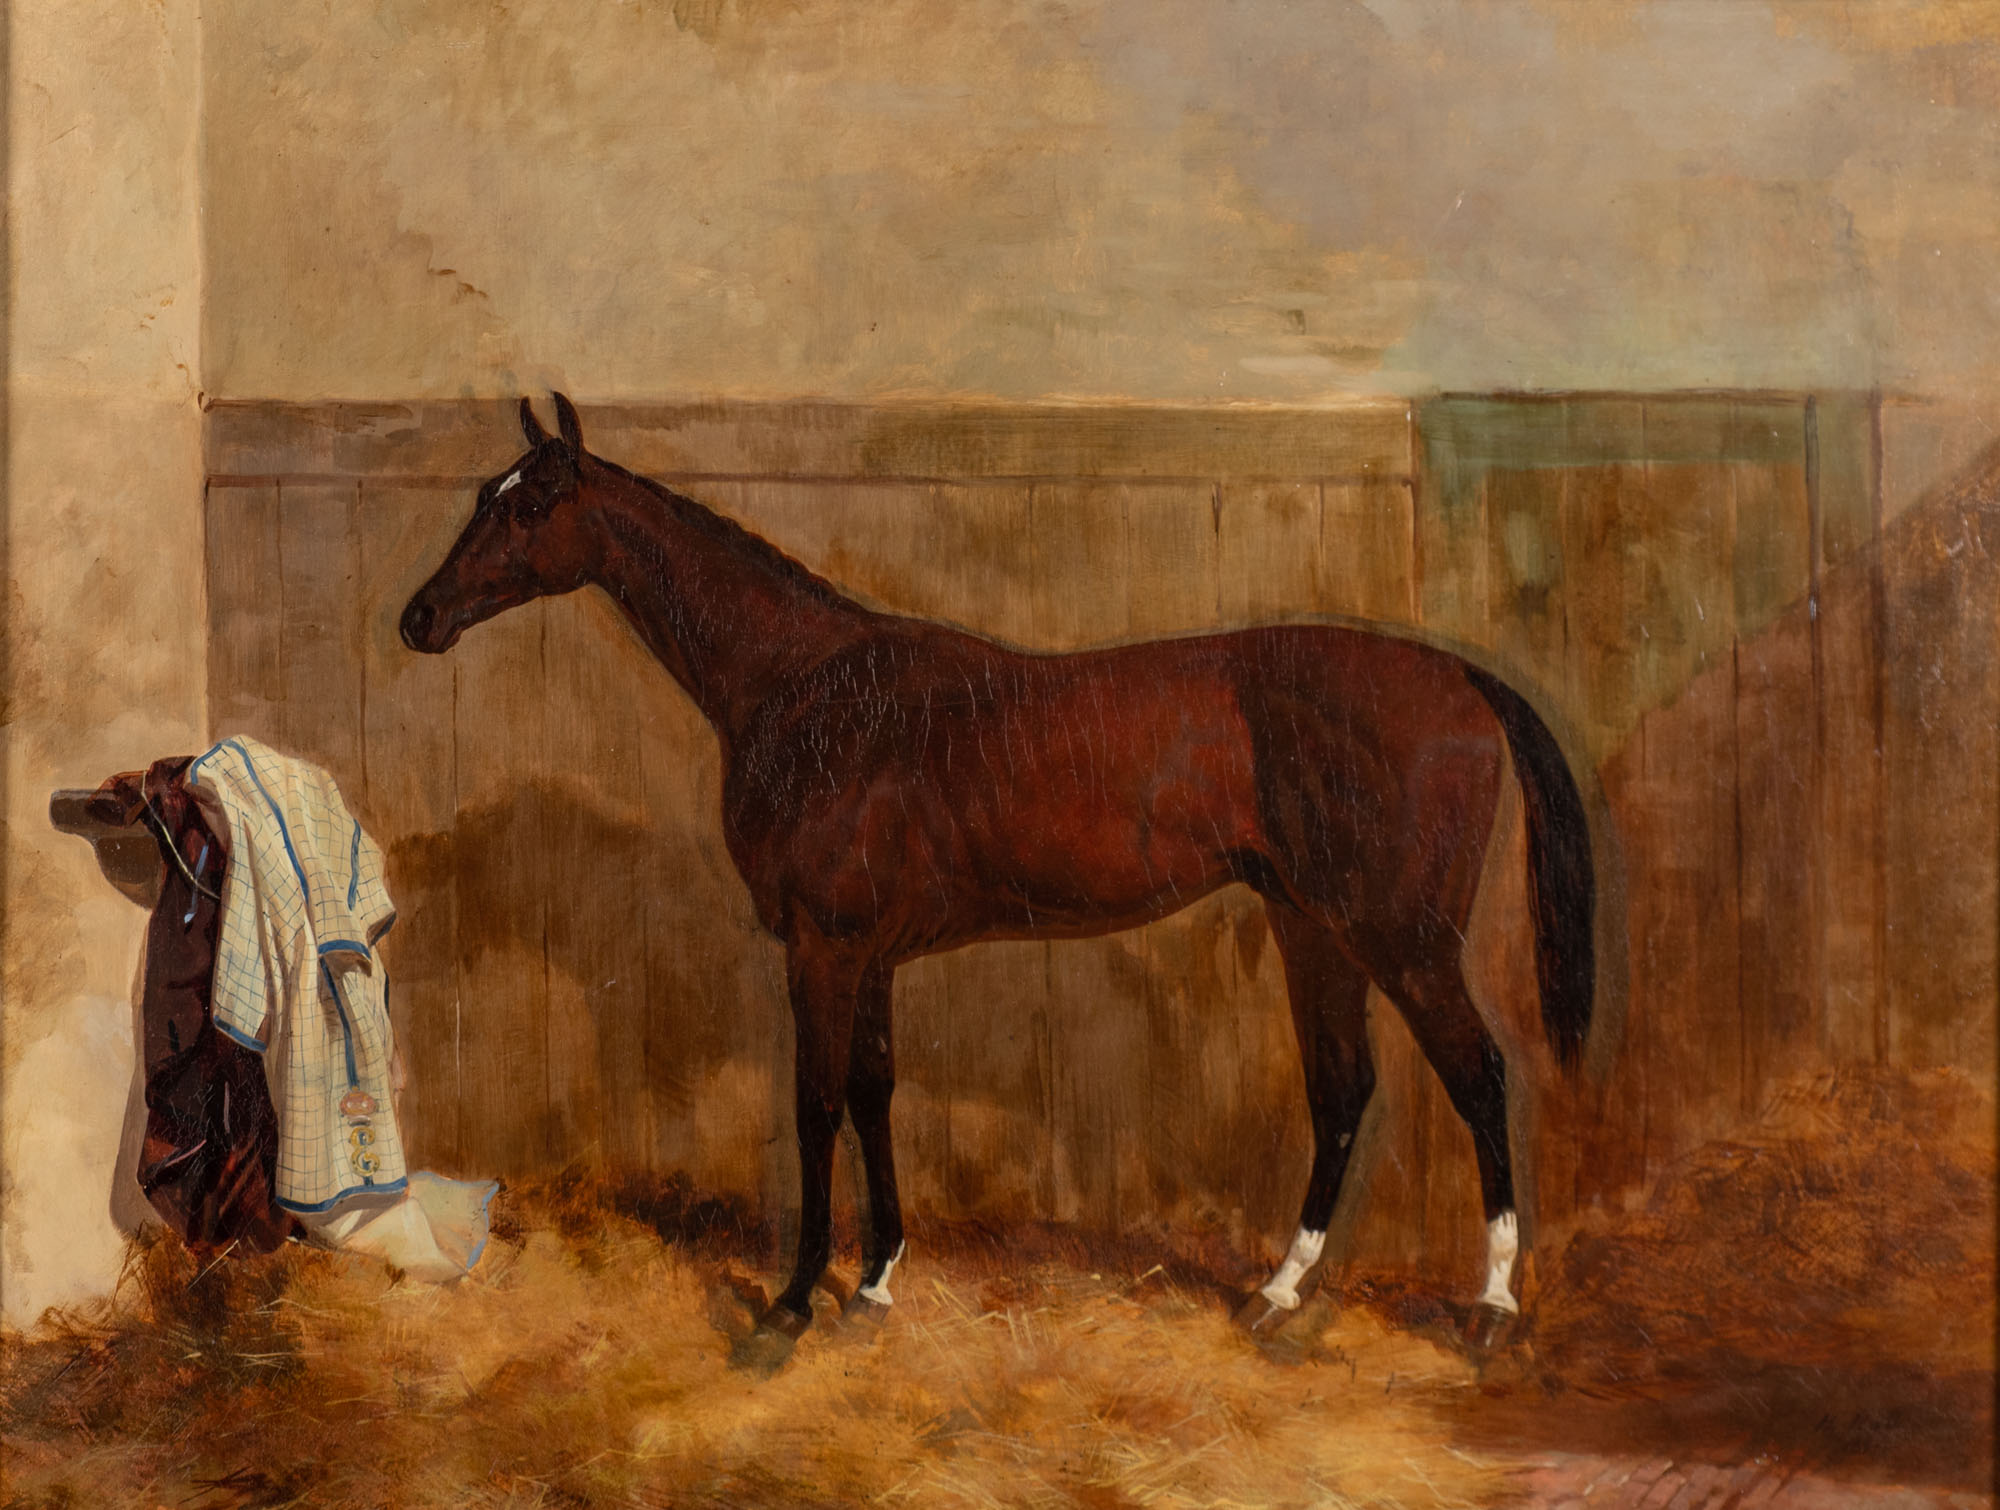 Little Jack, a Bay Racehorse in a Stable, by Harry Hall (1812-1888).